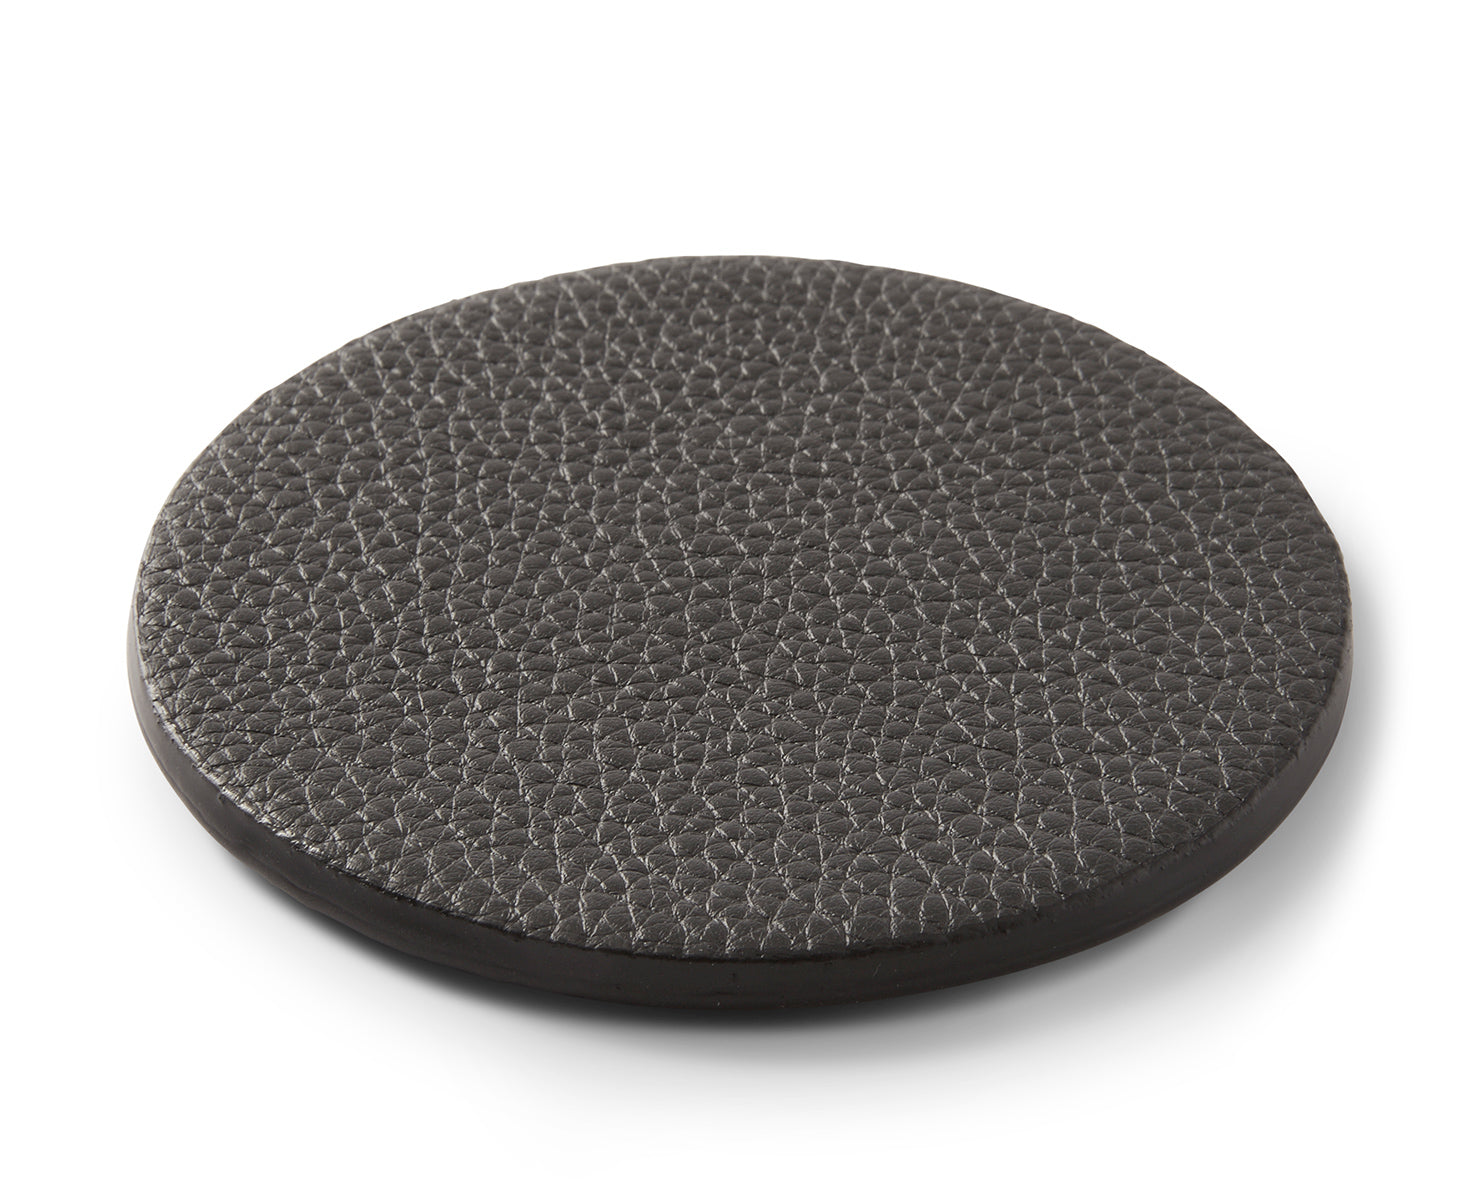 COASTER | KILLSPENCER® - Charcoal Grey Leather